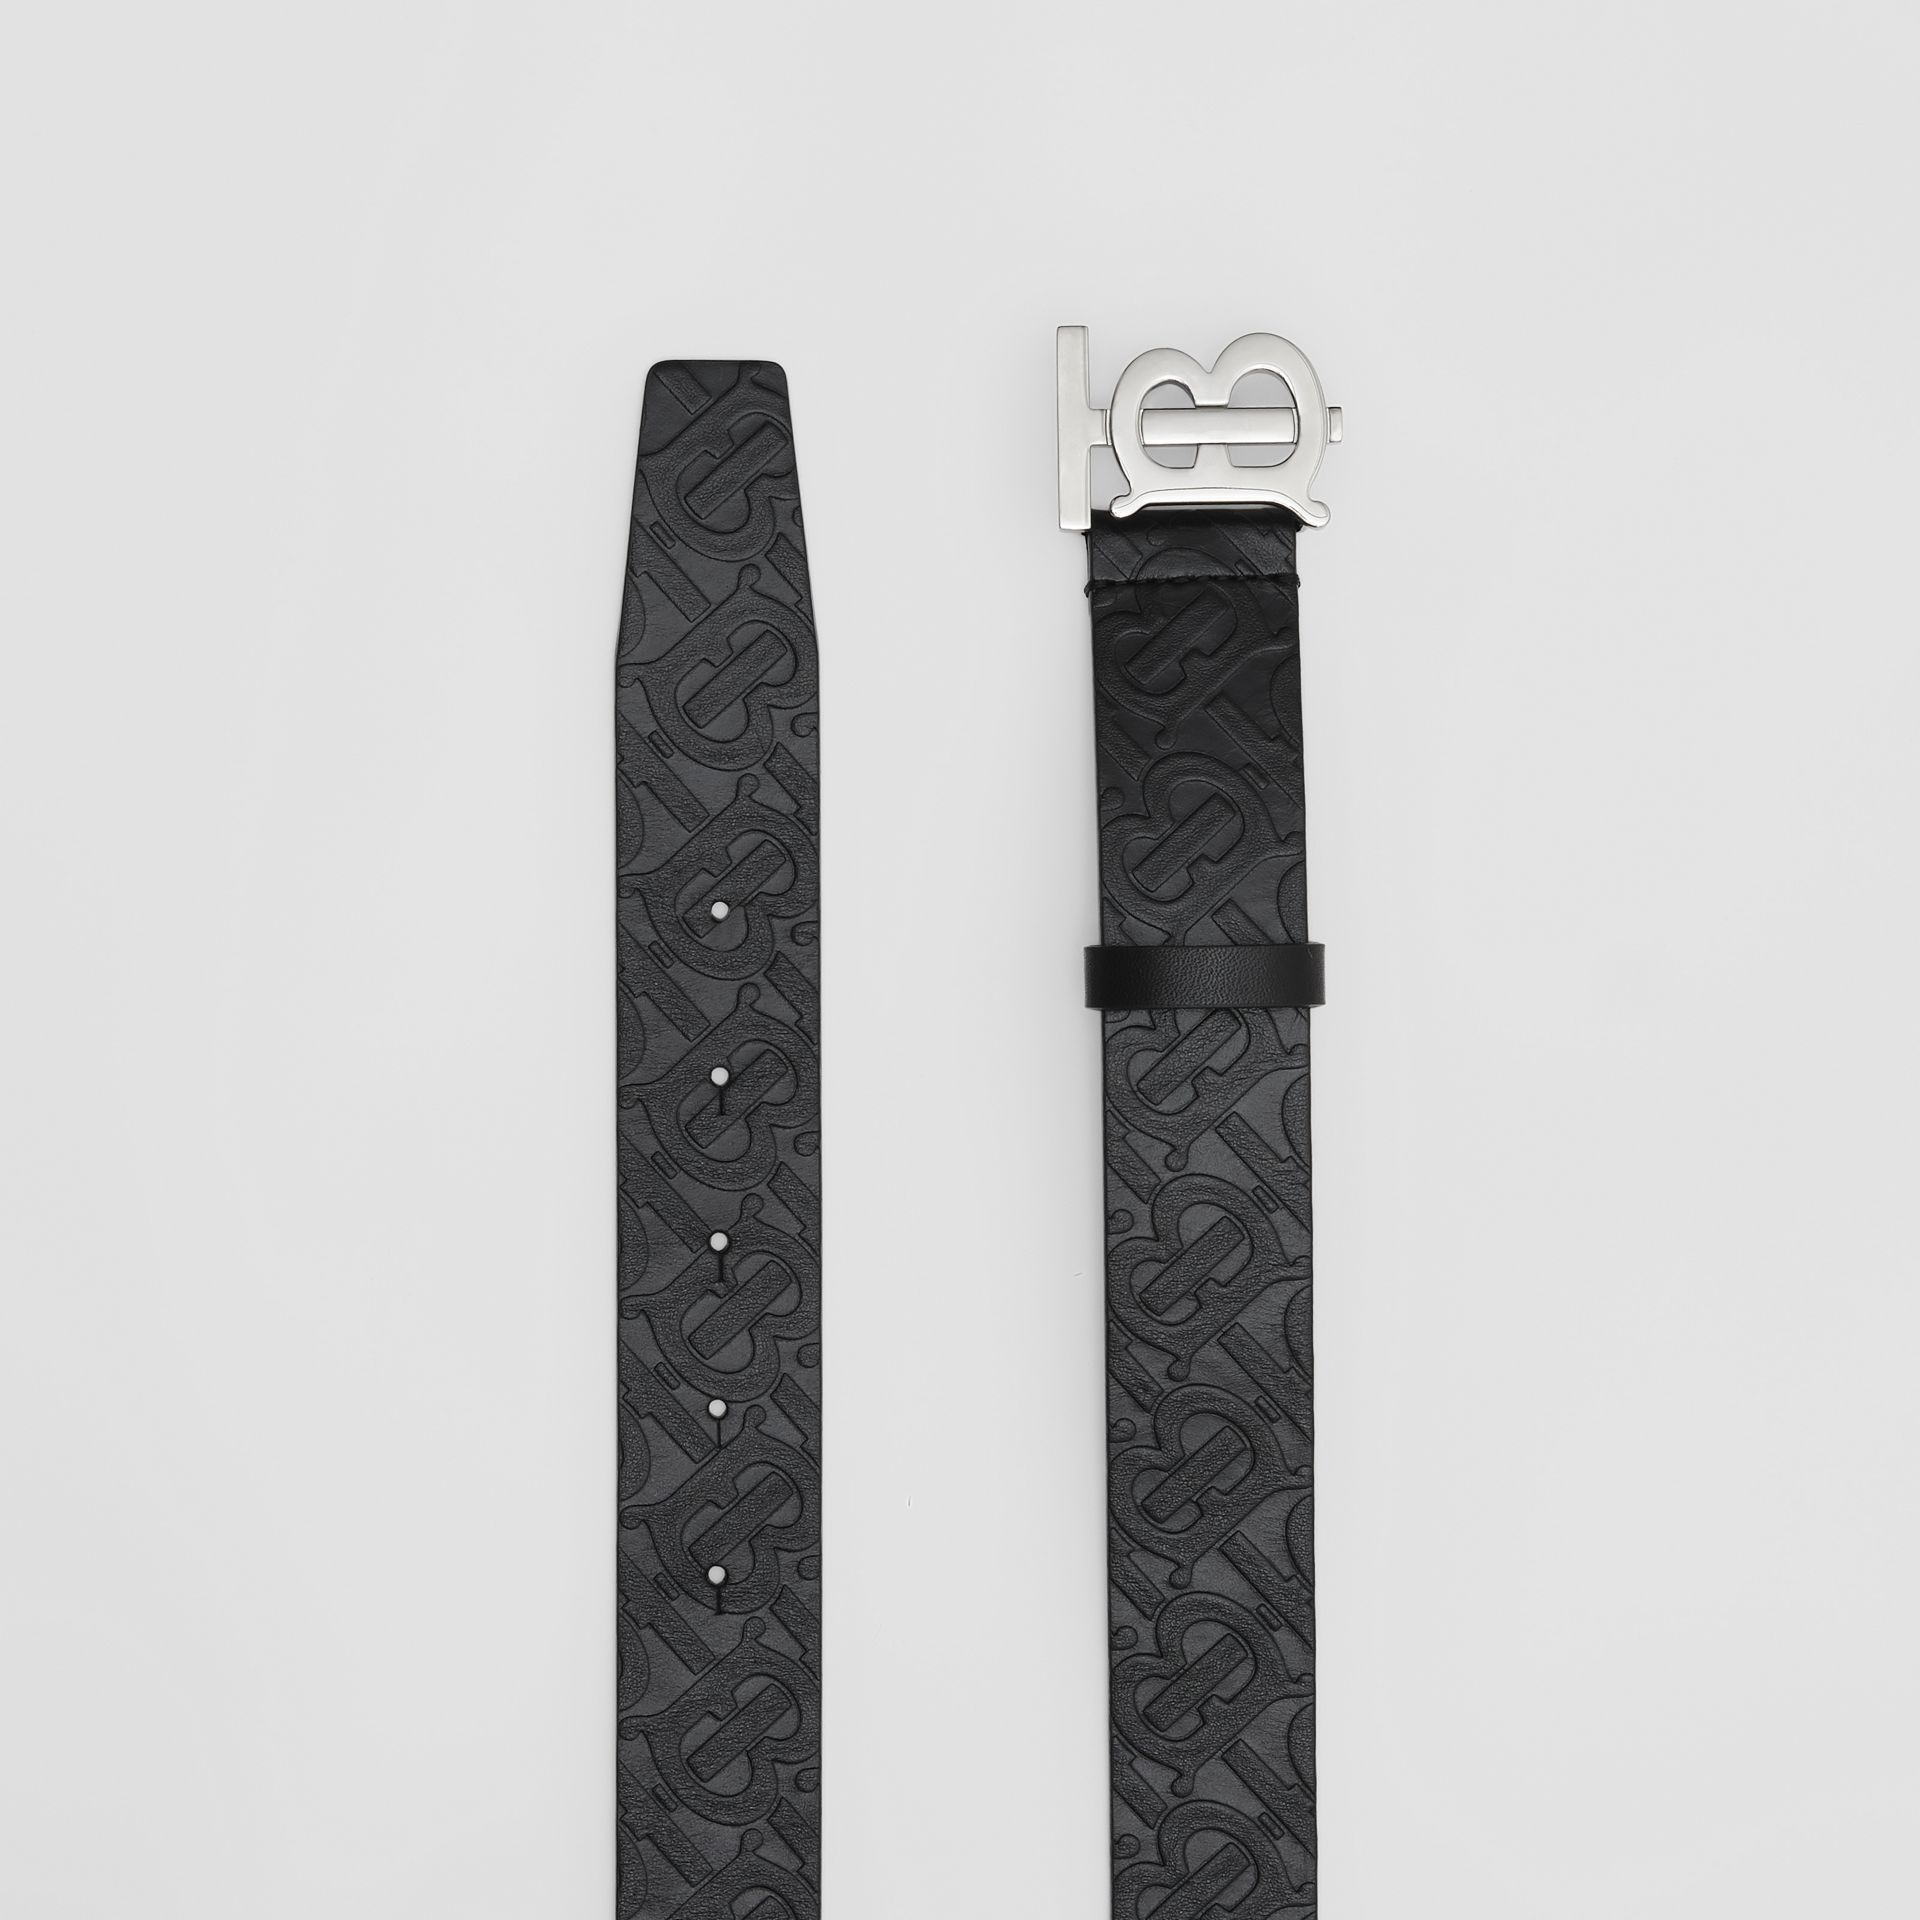 Monogram Motif Monogram Leather Belt in Black - Men | Burberry - gallery image 5